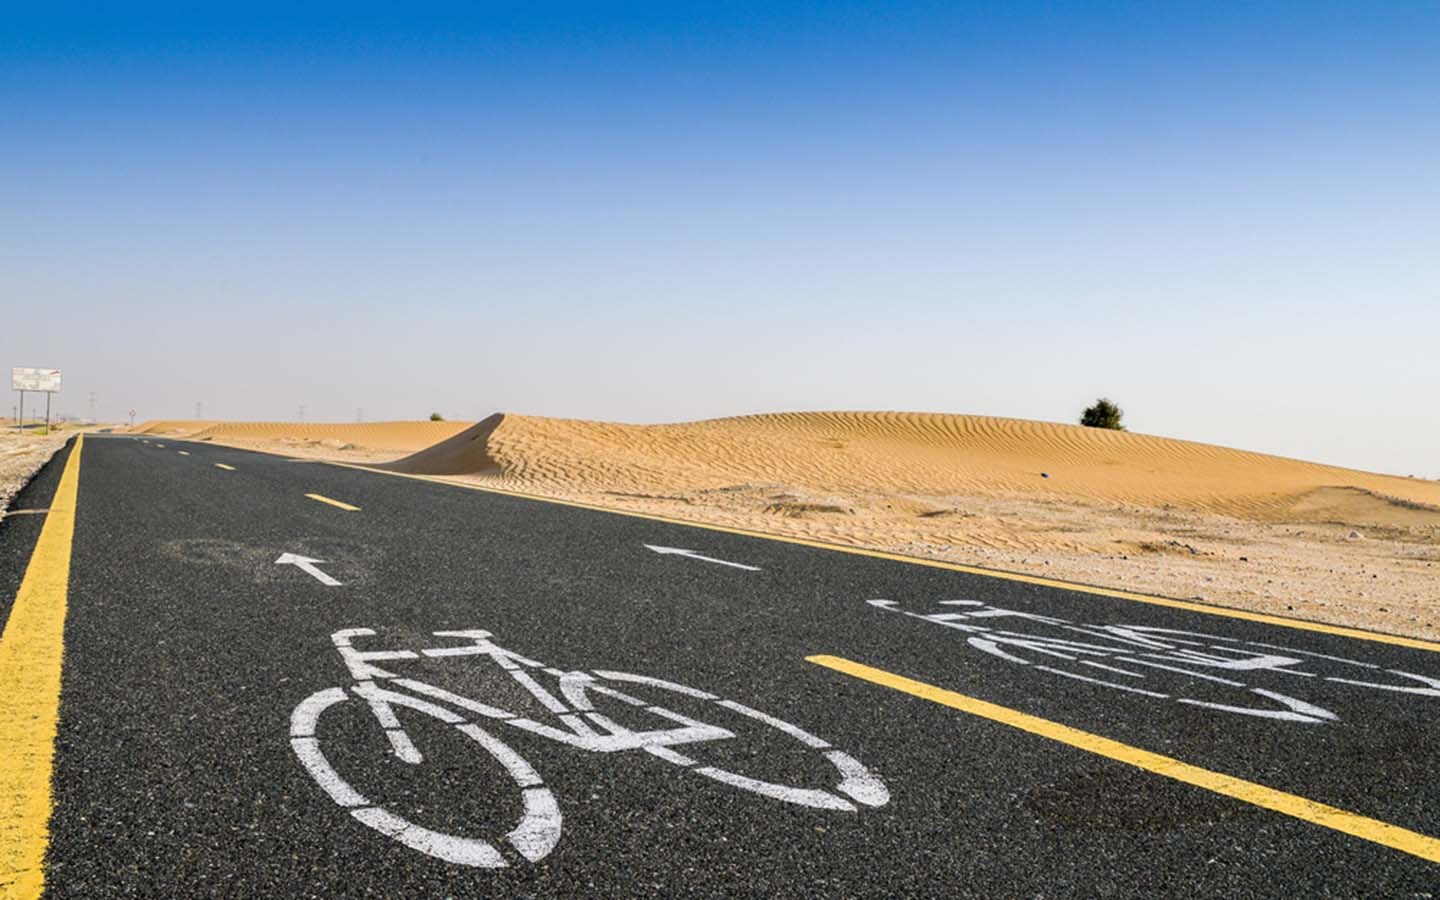 A view of Al Qudra Cycle Track